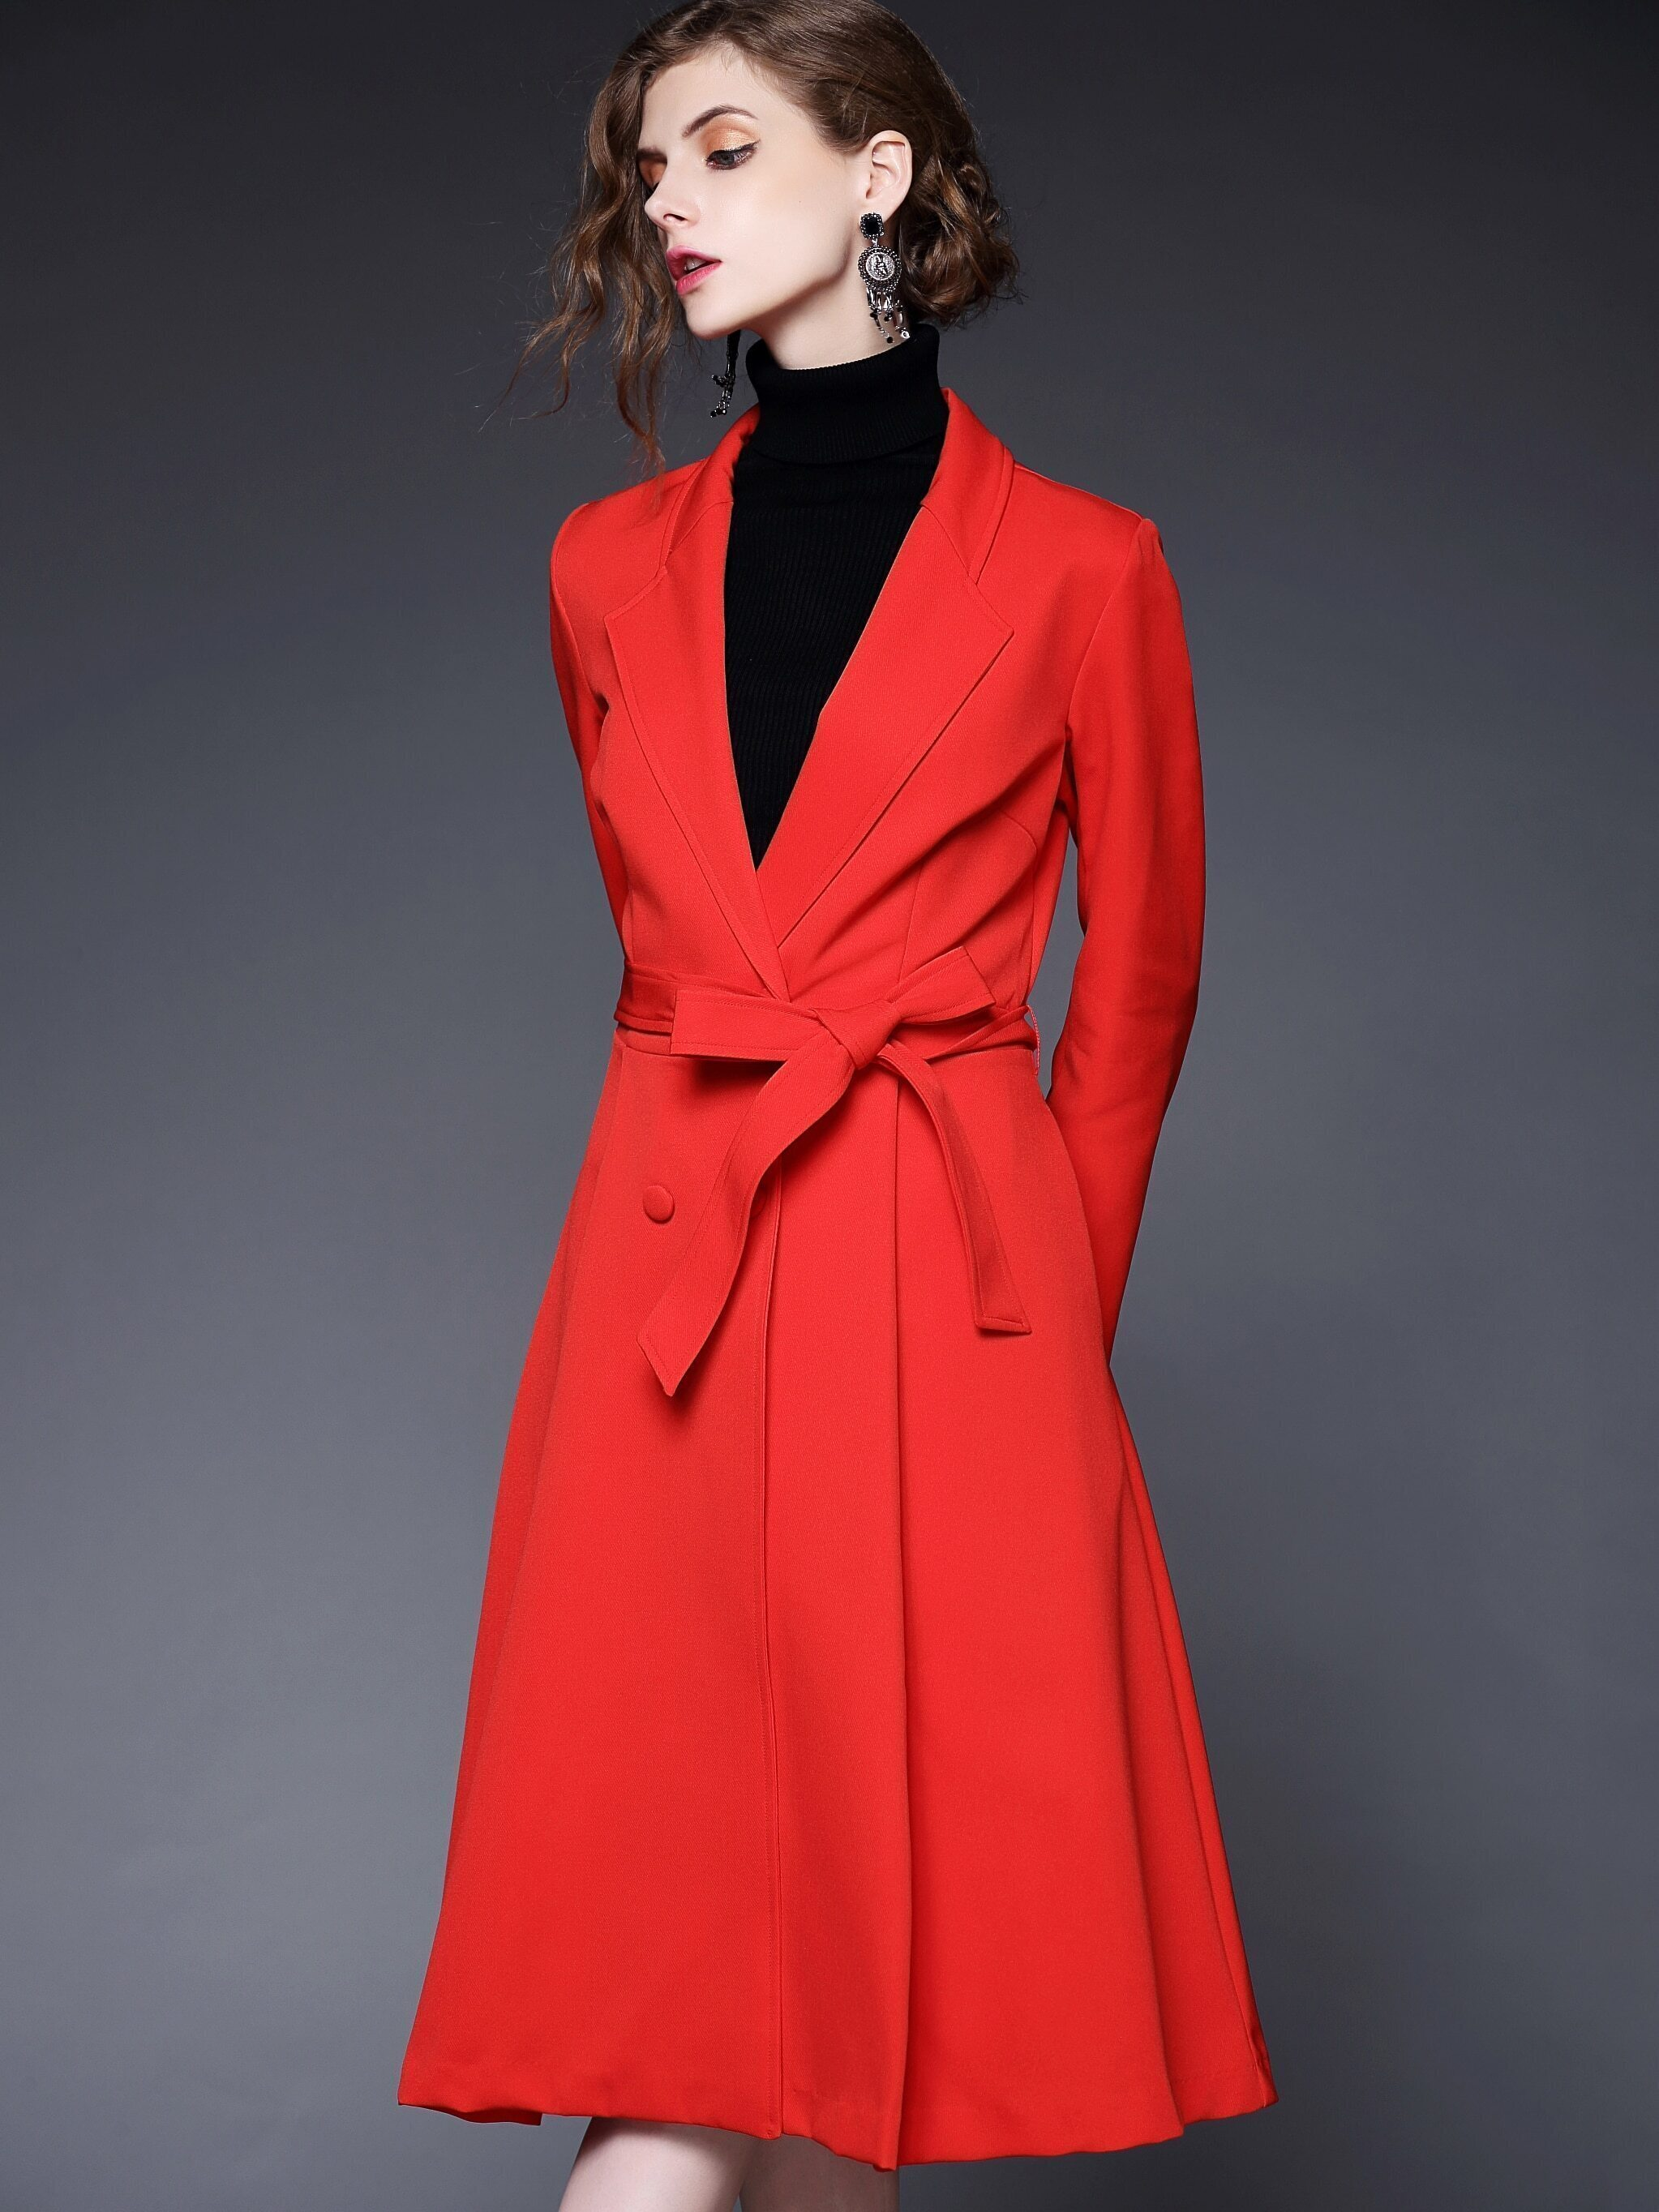 Red Long Sleeve Tie-Waist Pockets Coat